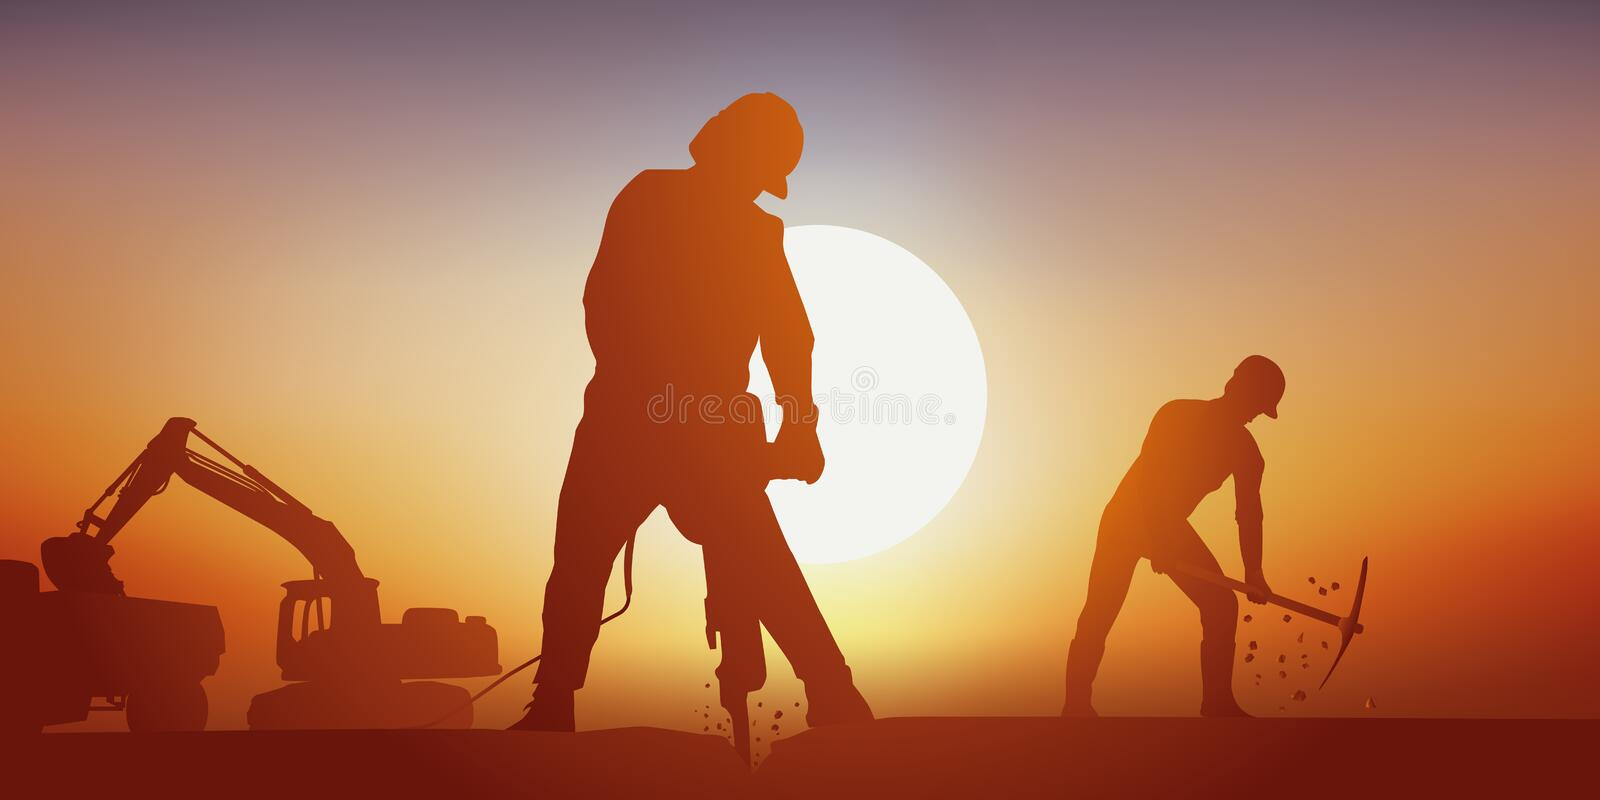 A highway construction site with men working hard in the heat. Public worksmen are working with a jackhammer and a pickaxe at the construction of a road. In the royalty free illustration